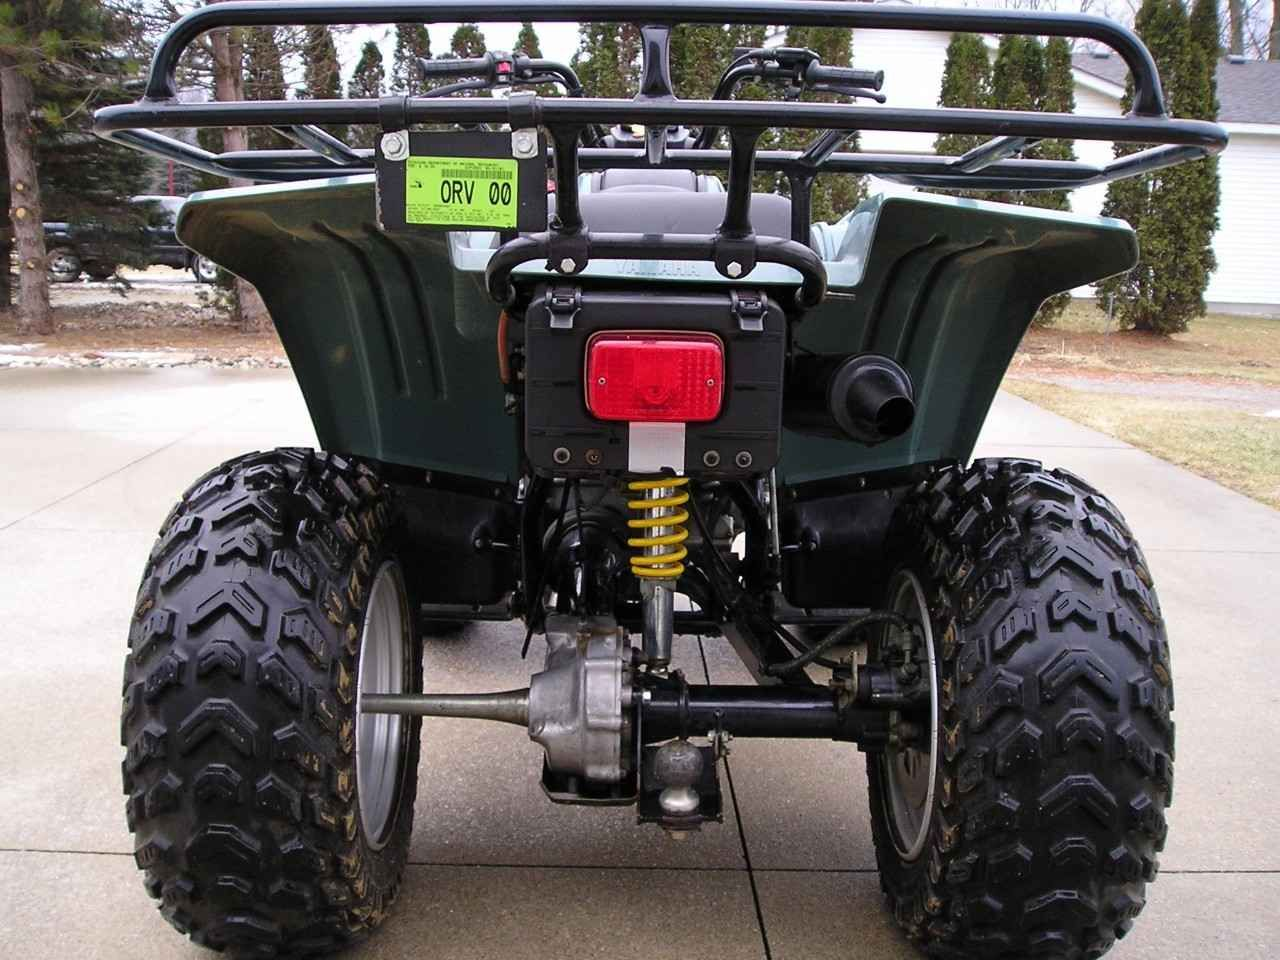 Used 1995 yamaha wolverine 350 atvs for sale in michigan yamaha used 1995 yamaha wolverine 350 atvs for sale in michigan fandeluxe Choice Image